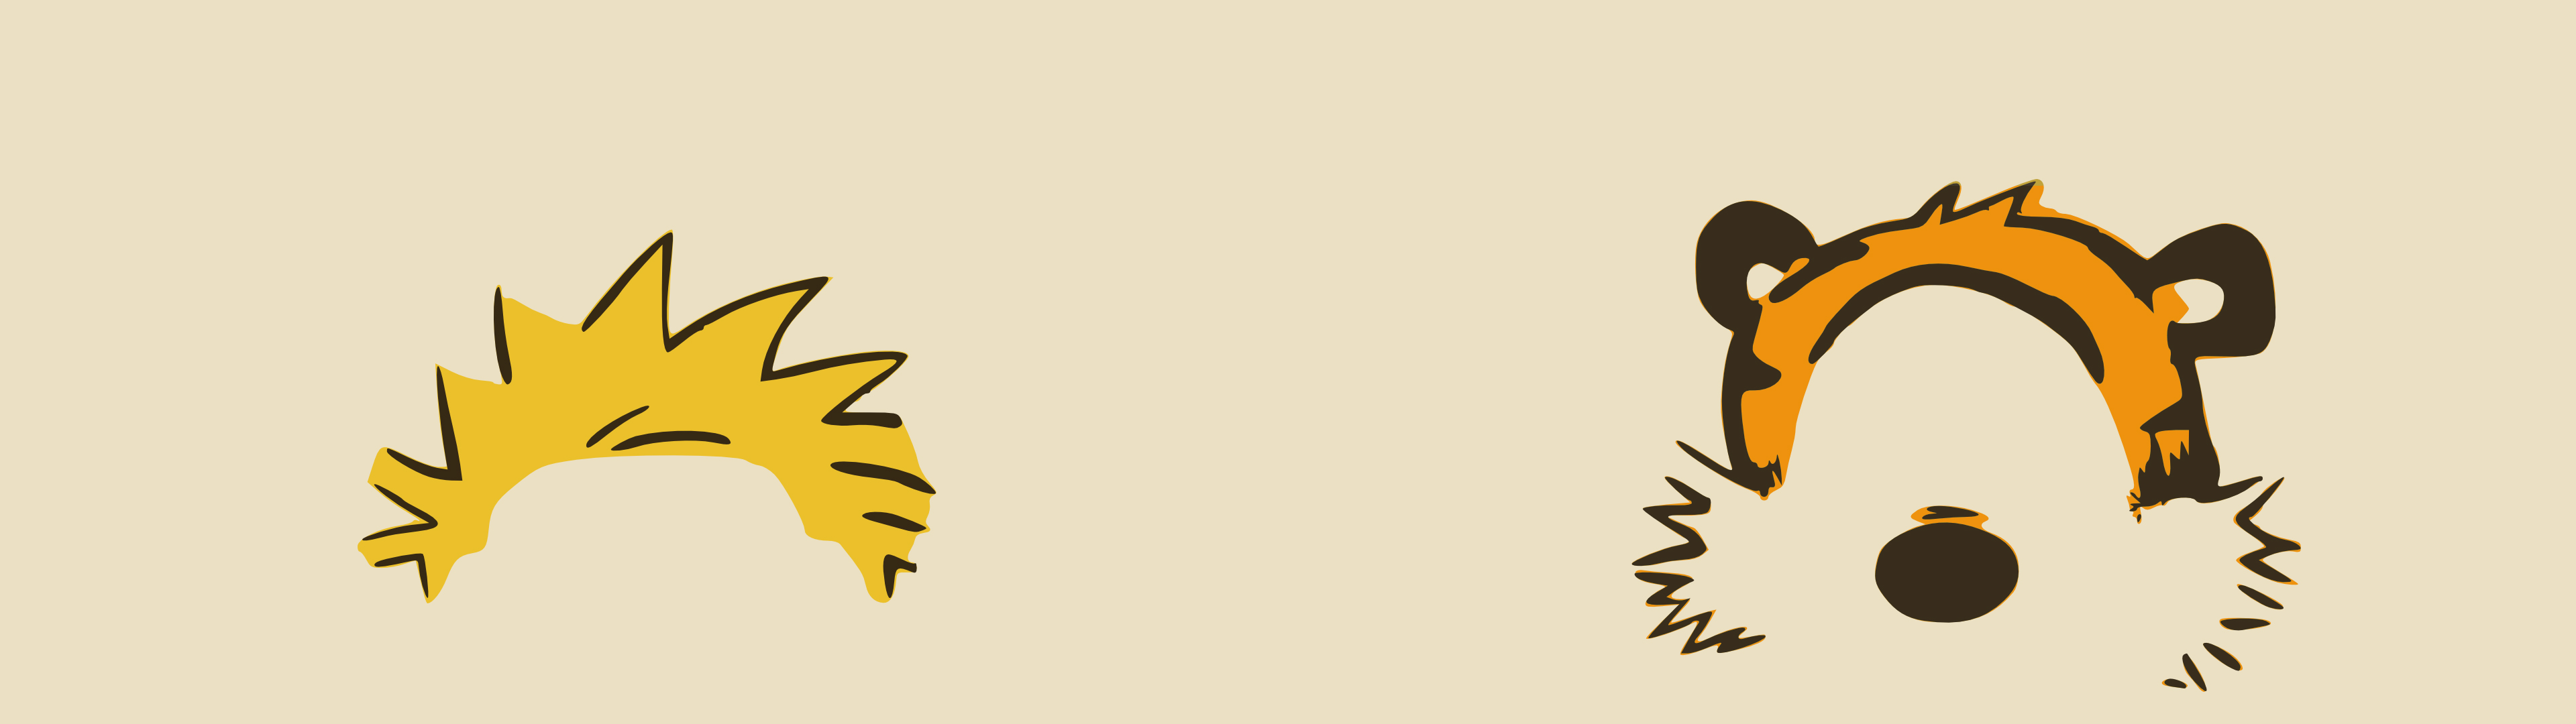 Dual Screen Wallpapers   Calvin and Hobbes   Album on Imgur 3840x1080